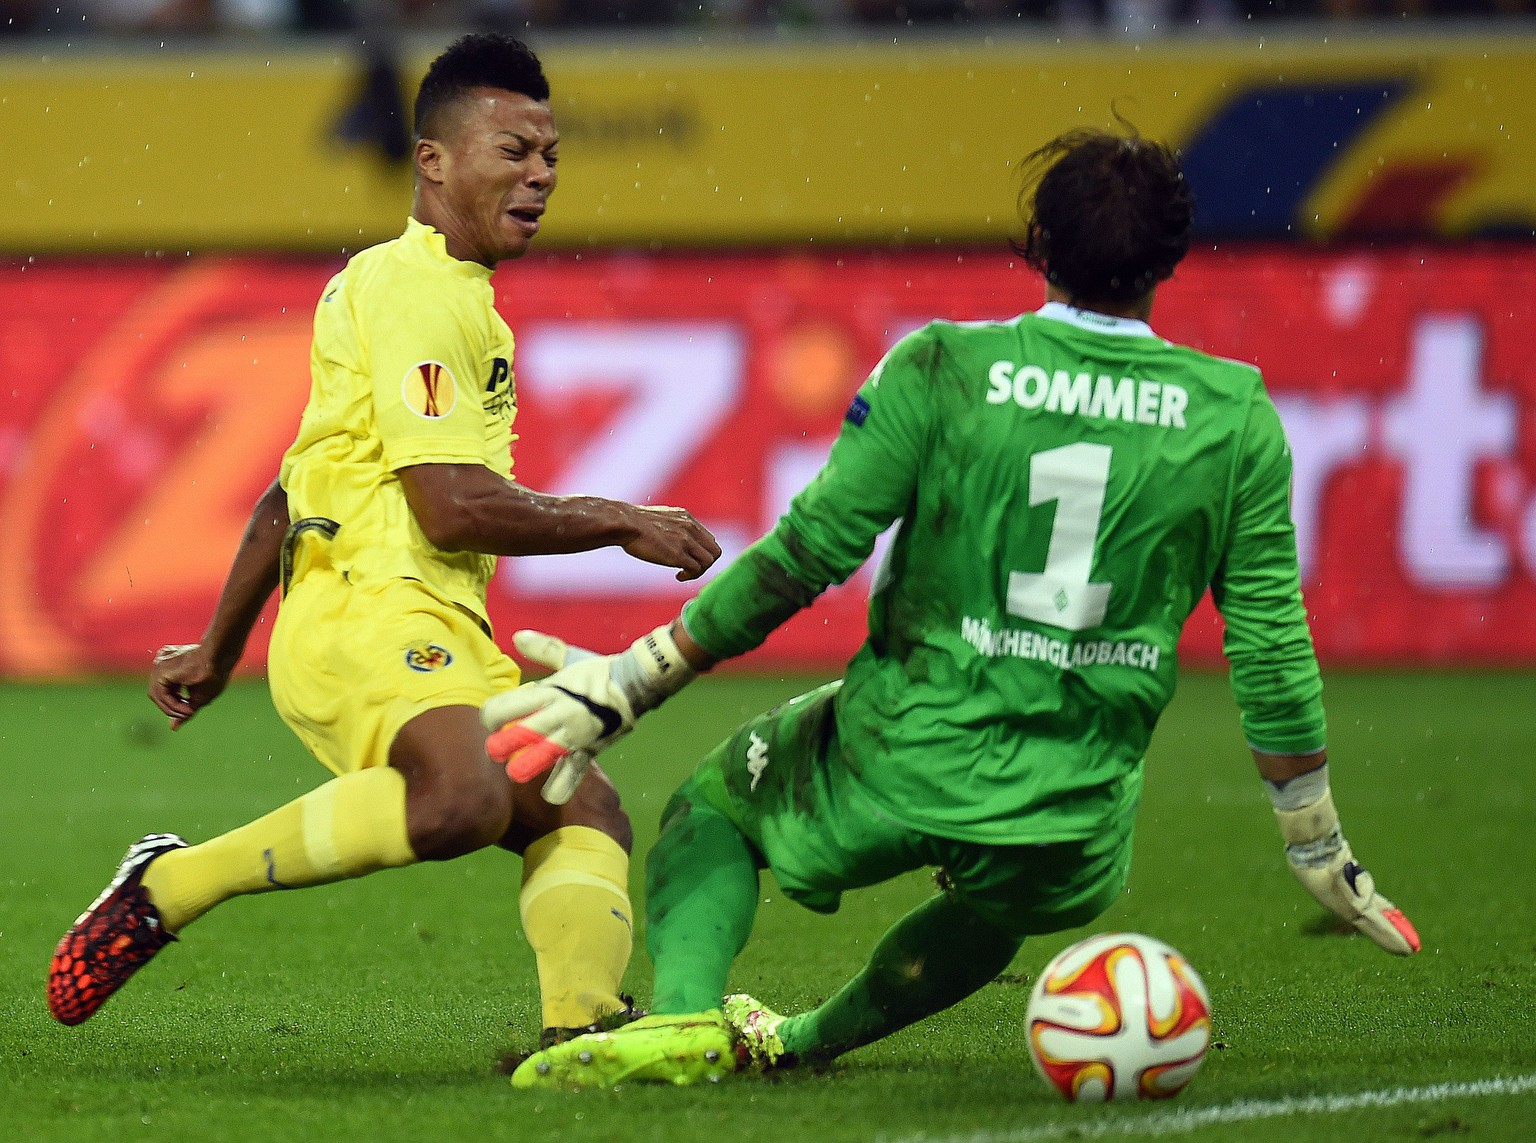 Moenchengladbach's Swiss goalkeeper Yann Sommer (R) and Villarreal's Ikechukwu Uche (L) vie for the ball during the UEFA Europa League Group A match VfL Borussia Moenchengladbach vs Villarreal CF on September 18, 2014 at Borussia-Park stadium in Moenchengladbach, western Germany. The match ended in a 1-1 draw.  AFP PHOTO / PATRIK STOLLARZ